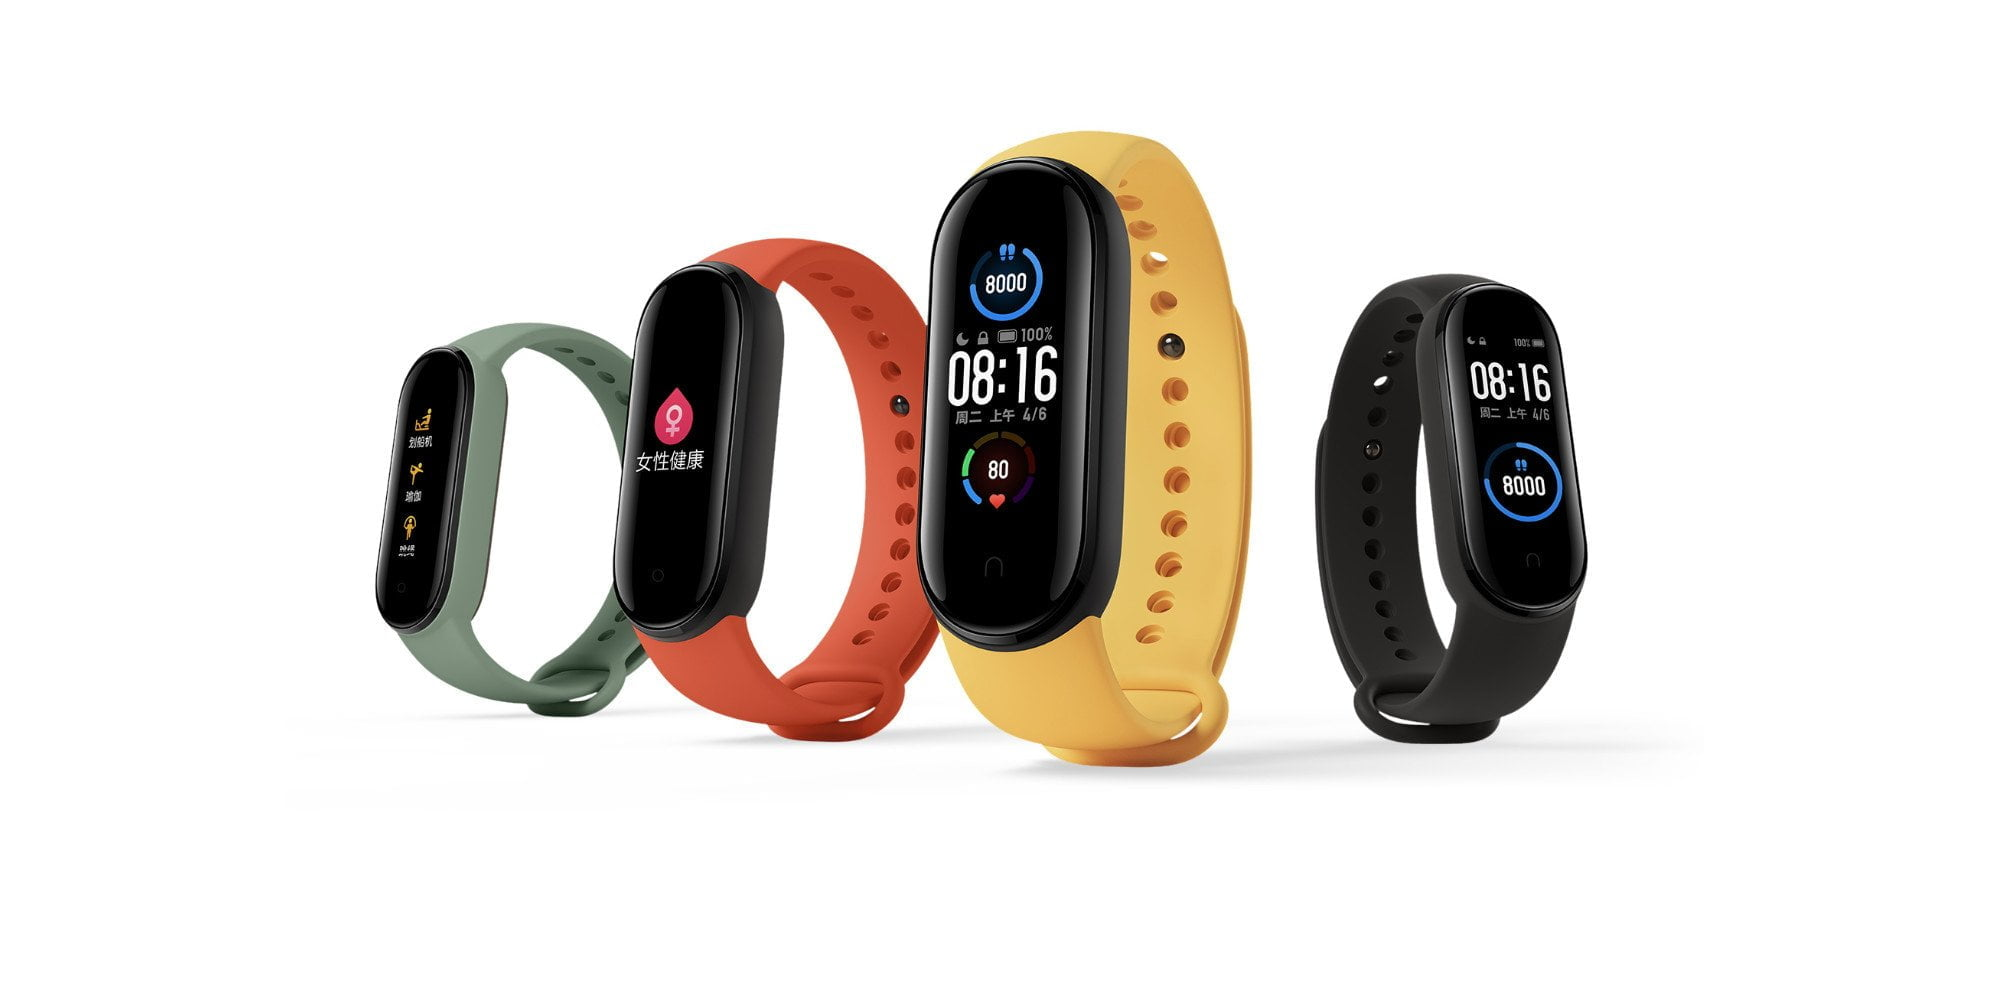 Xiaomi Mi Band 5 - All information about the fitness bracelet